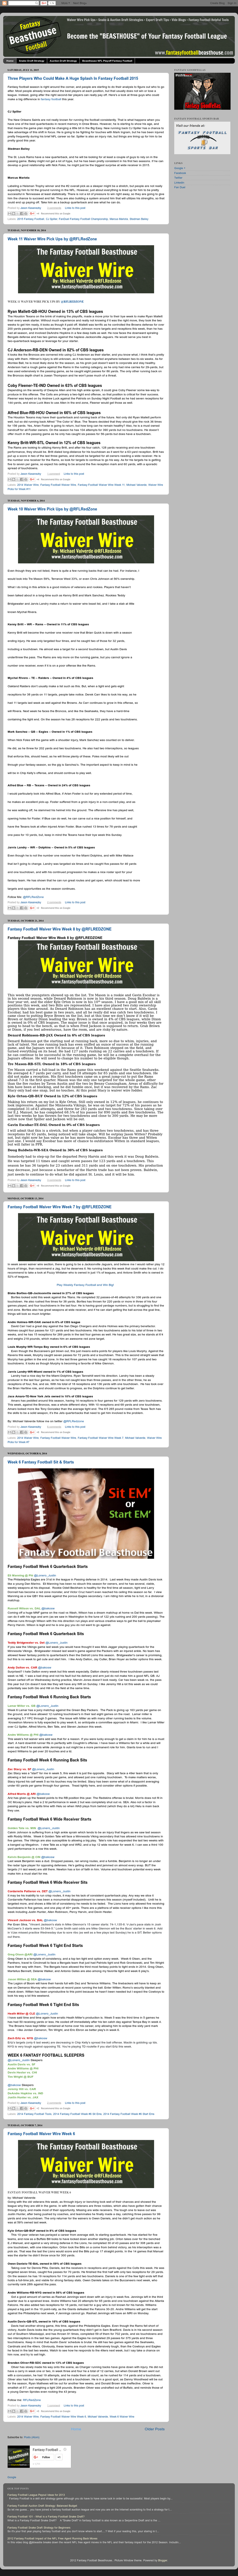 Magnificent Rb Waiver Wire Embellishment - Schematic diagram and ...